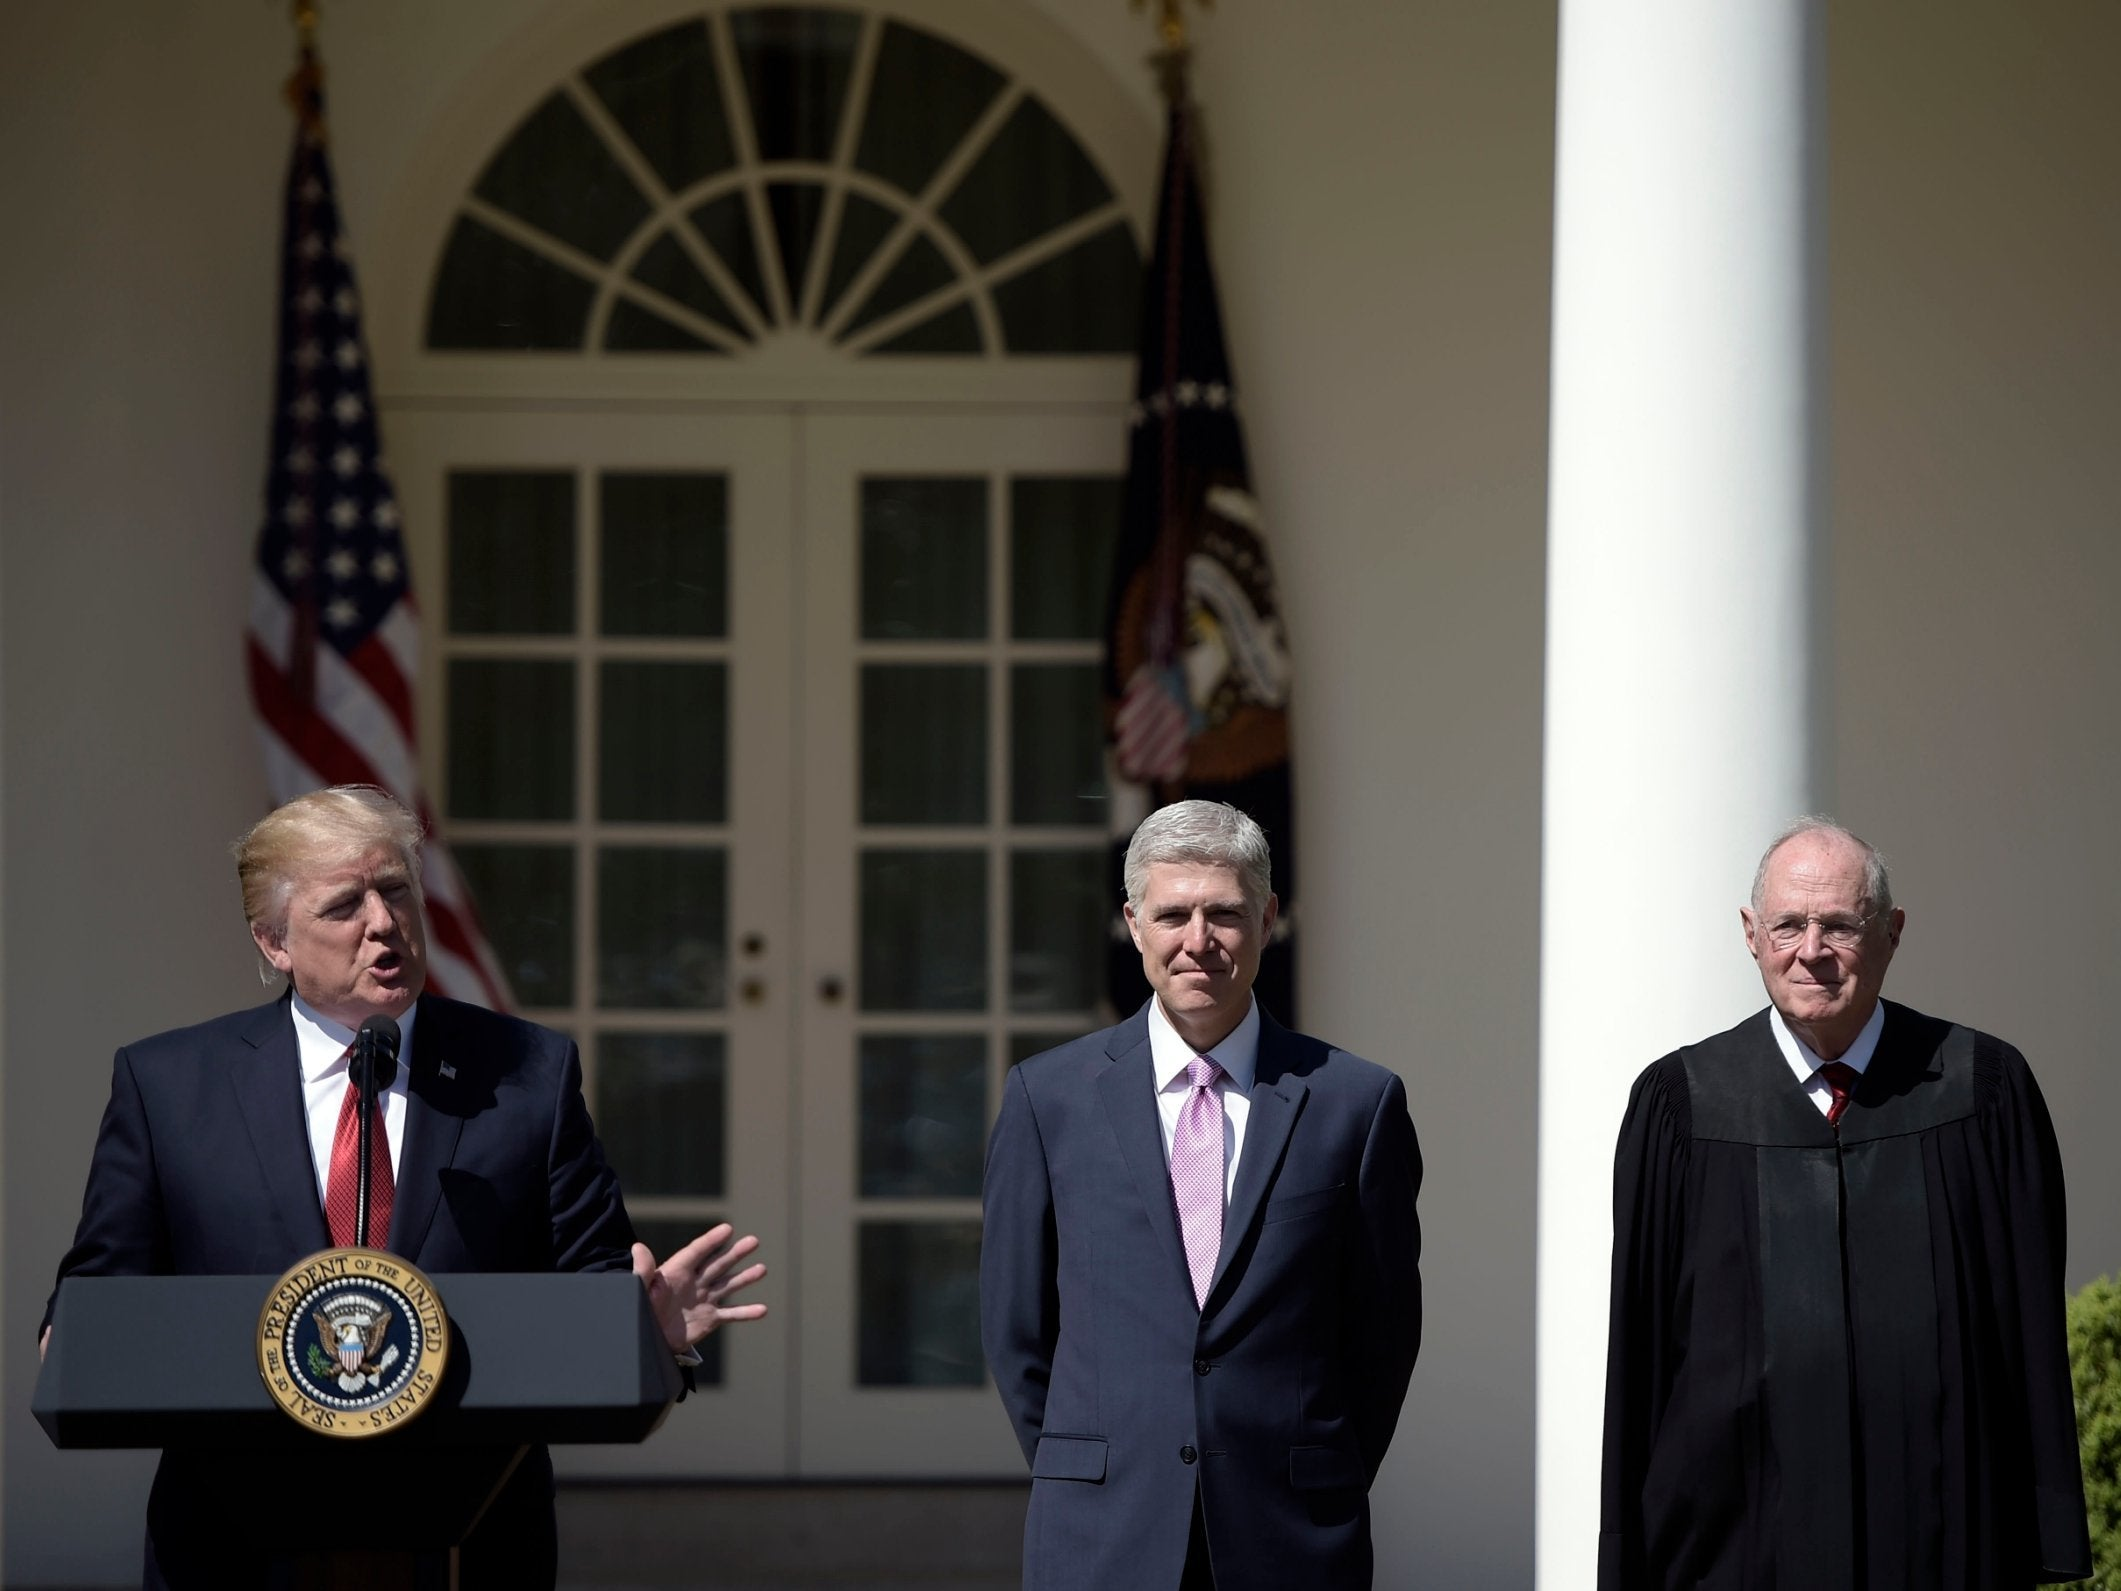 Is the Trump White House behind Justice Anthony Kennedy's Supreme Court retirement?